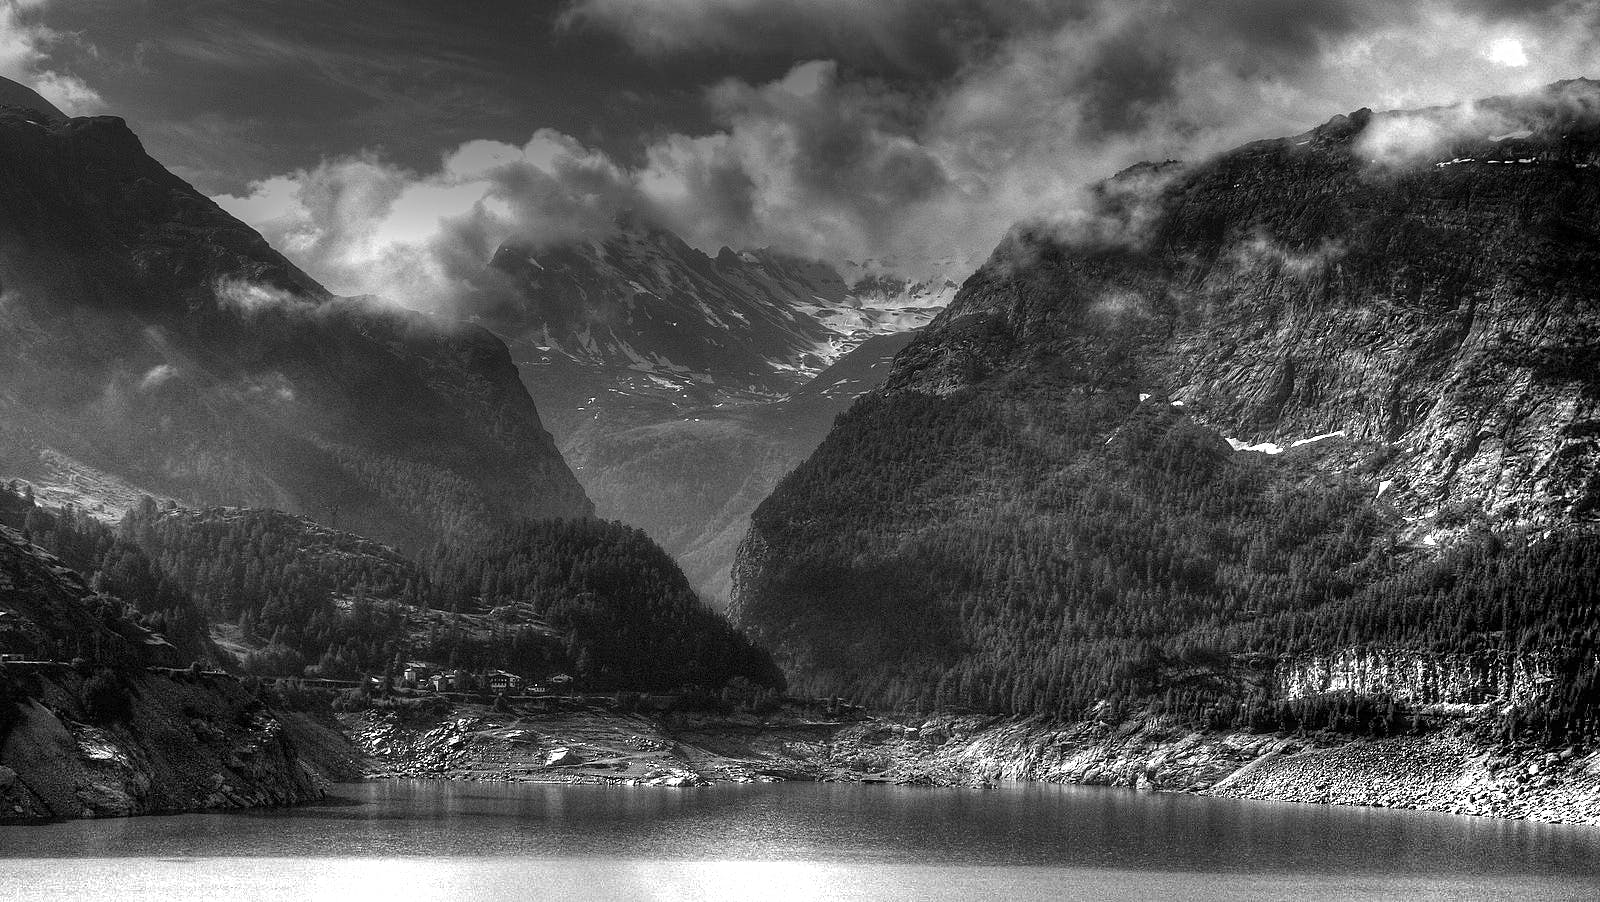 Grey Scale Photo of Body of Water Near Mountain Ranges